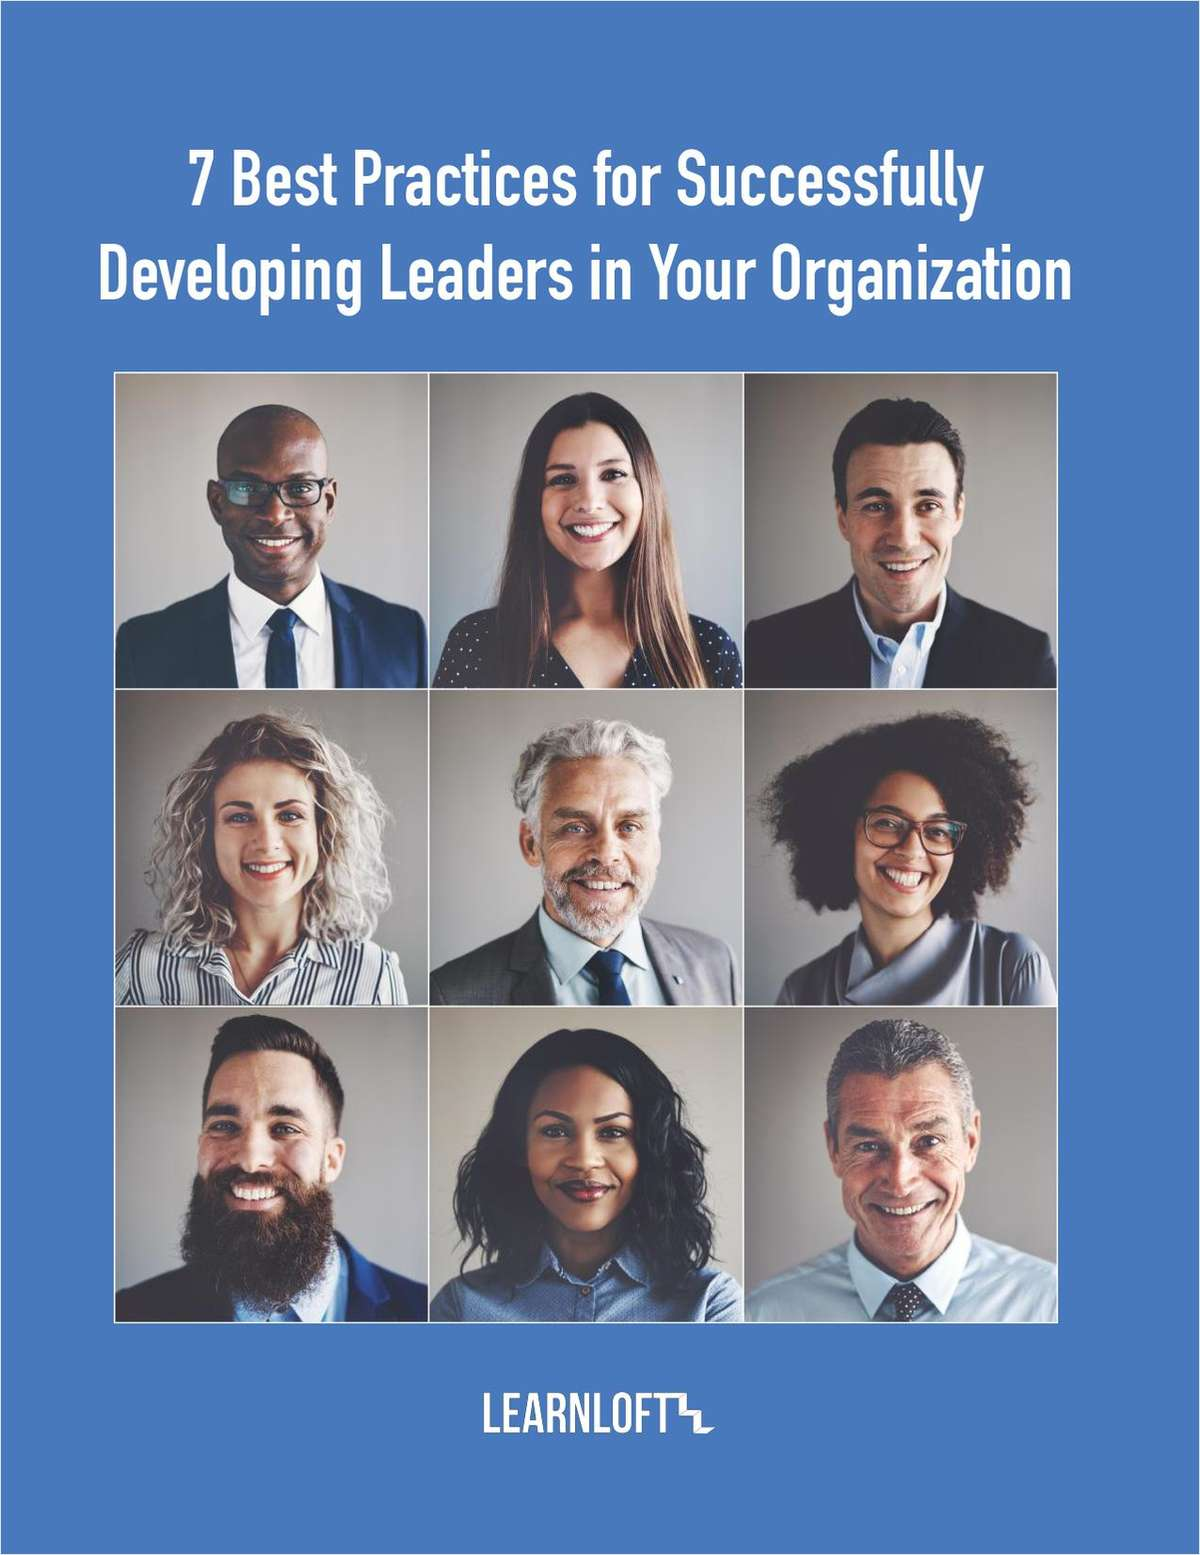 7 Best Practices for Successfully Developing Leaders in Your Organization